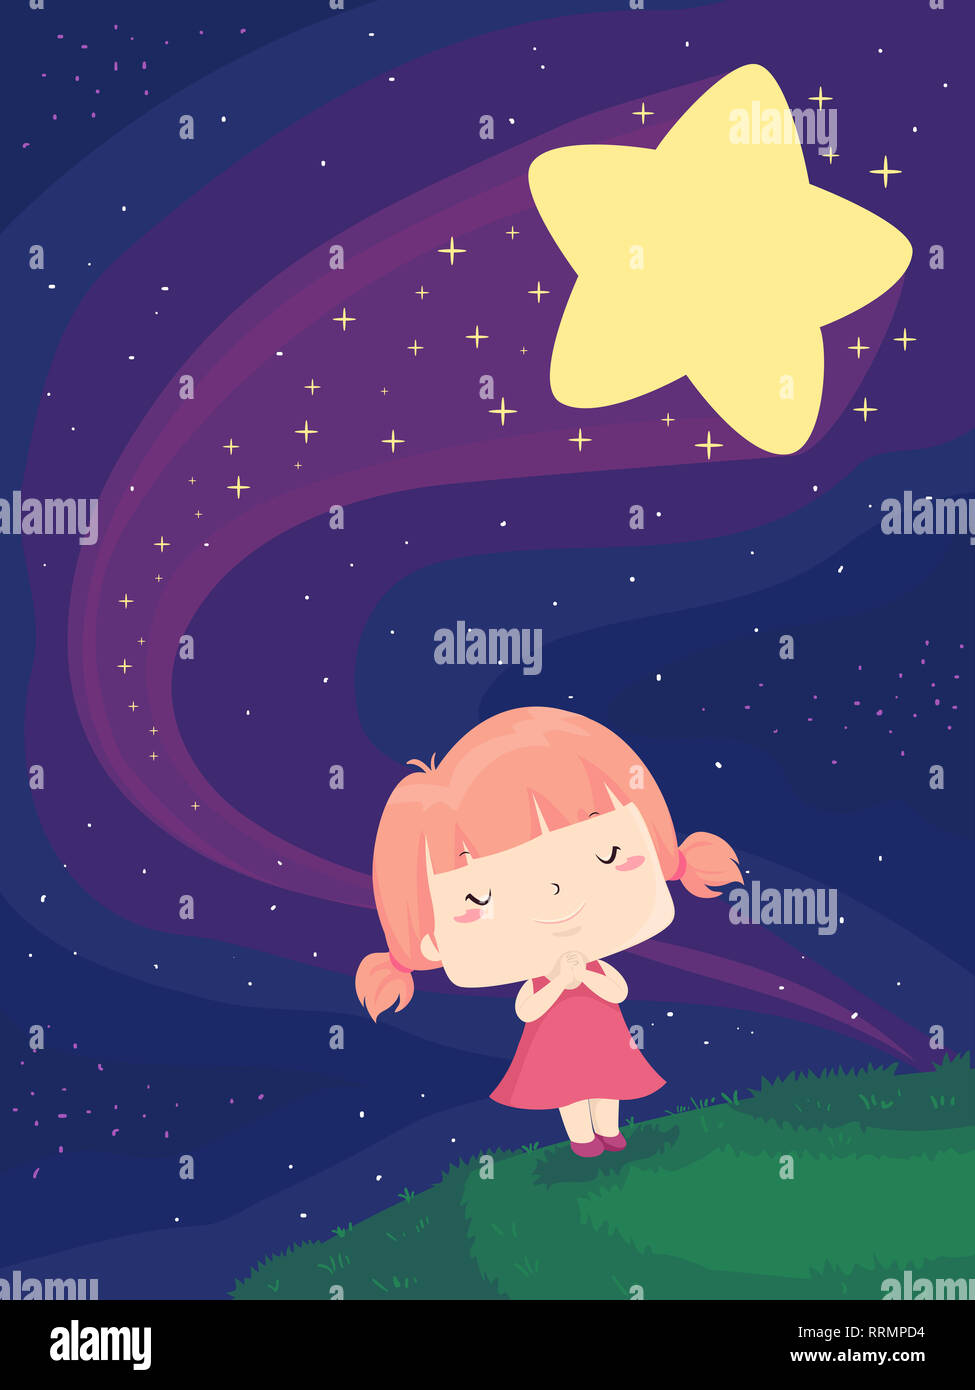 Illustration of a Kid Girl with Eyes Closed Wishing Earnestly on a